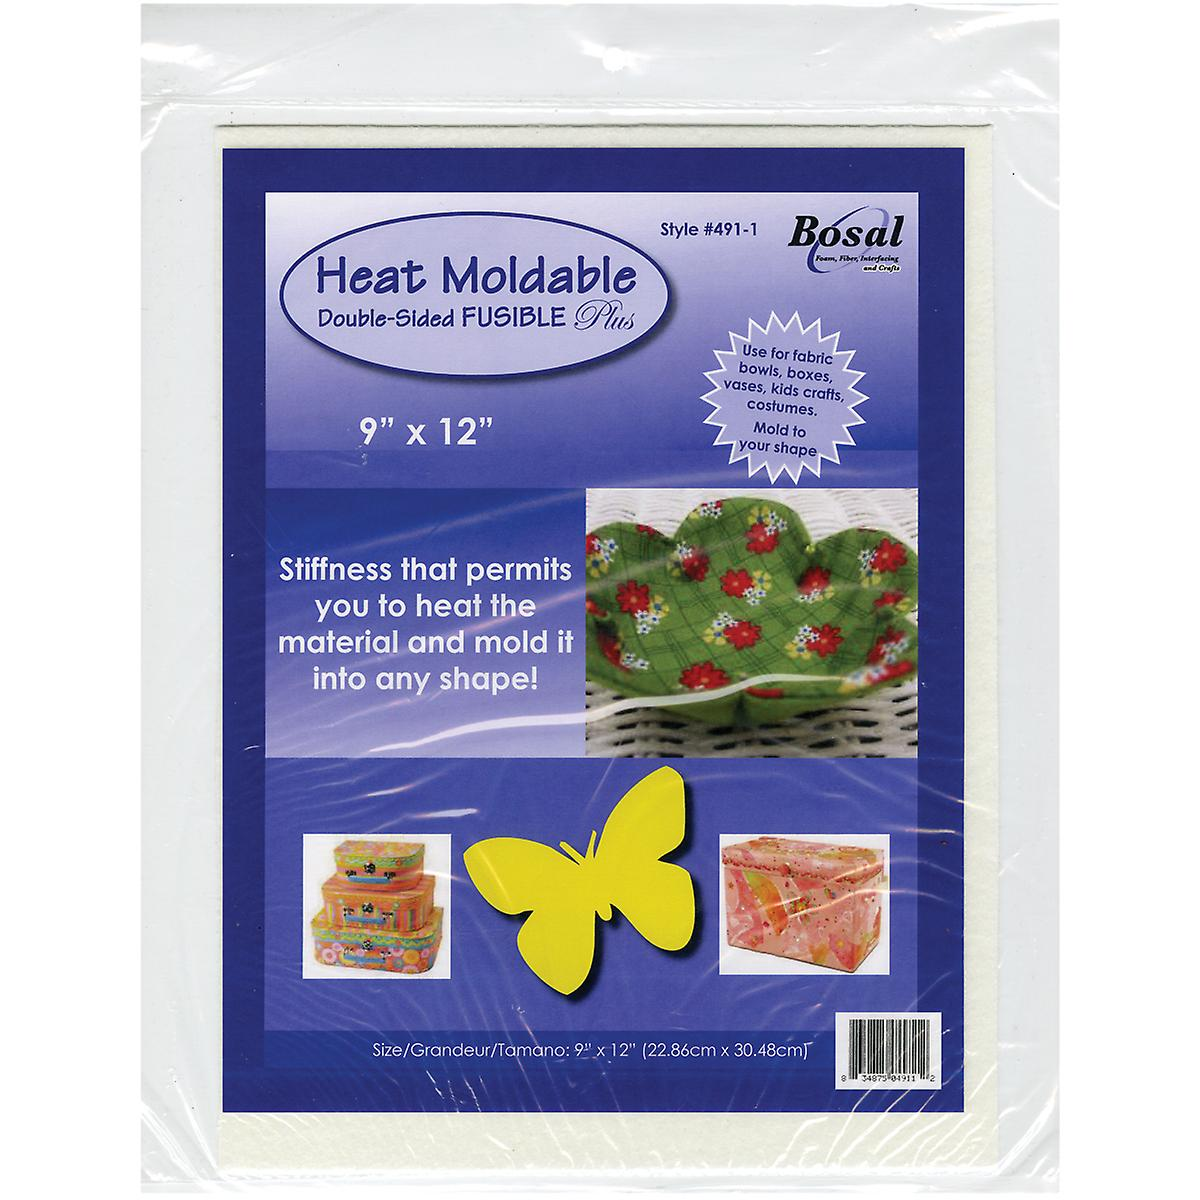 Heat Moldable Double Sided Fusible Plus 9